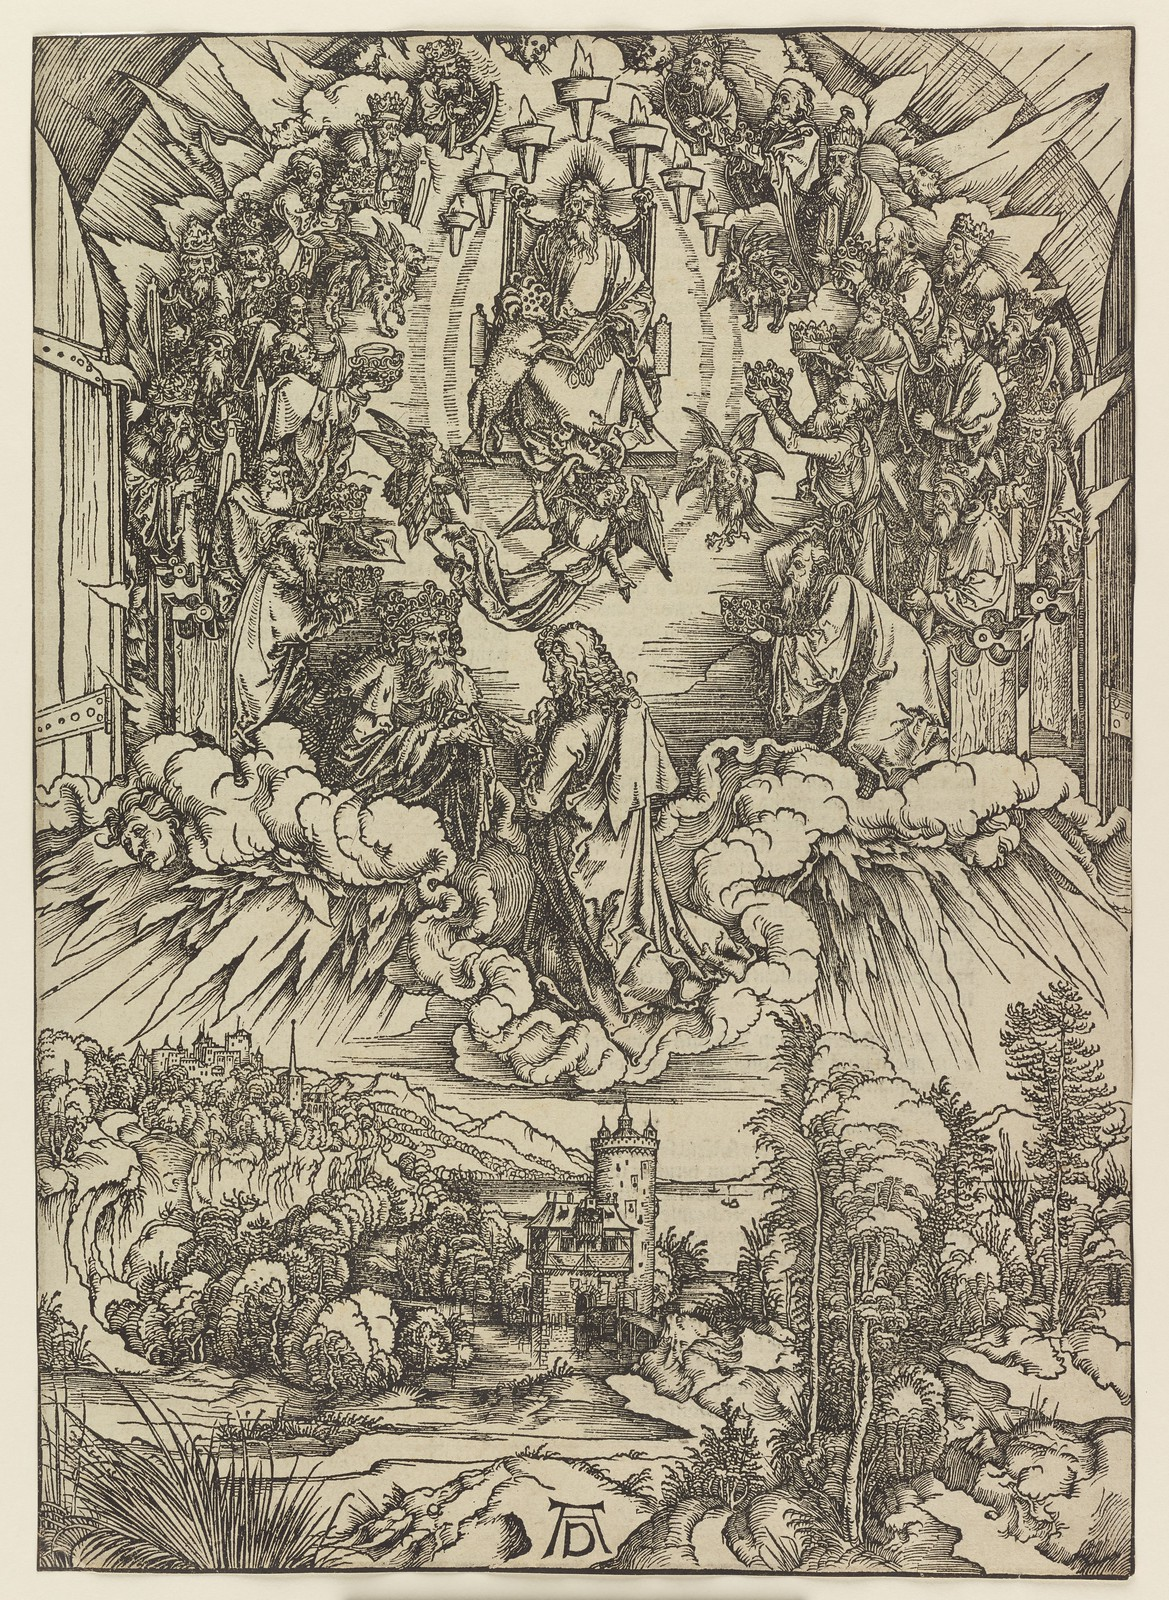 Albrecht Dürer - St John before God and the elders, Plate three of fifteen from the Latin edition of The Apocalypse series, printed 1511